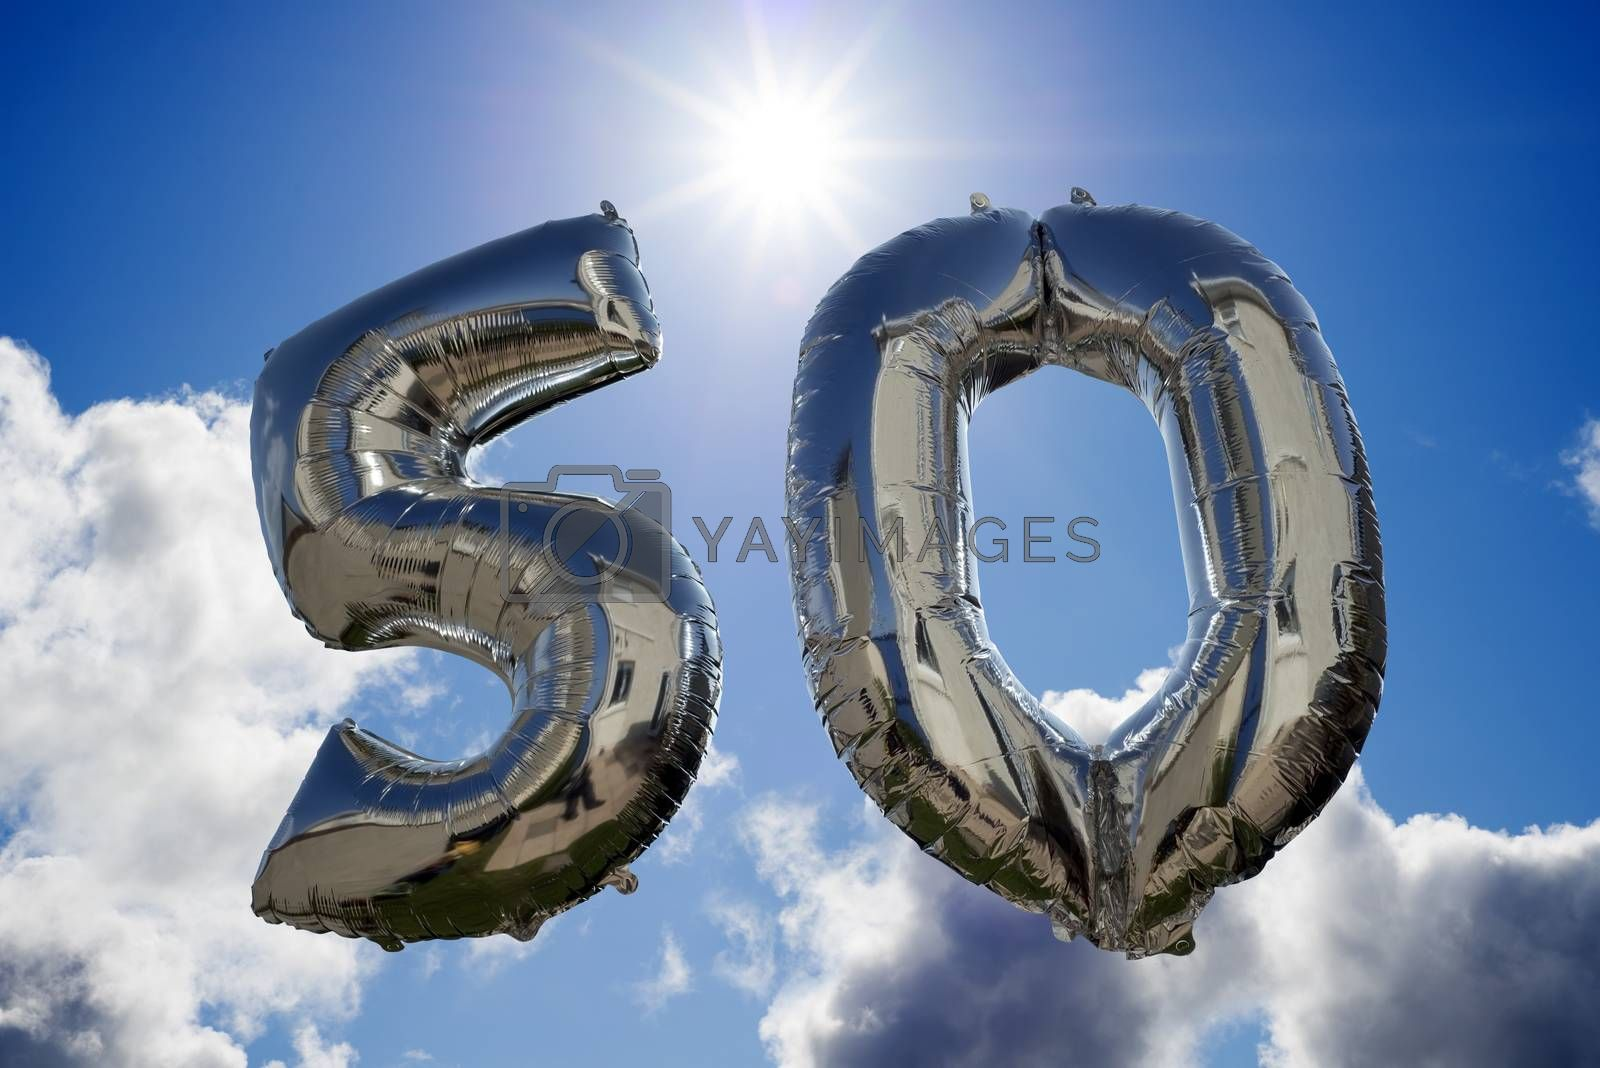 silver balloons for a 50th anniversary floating among the clouds